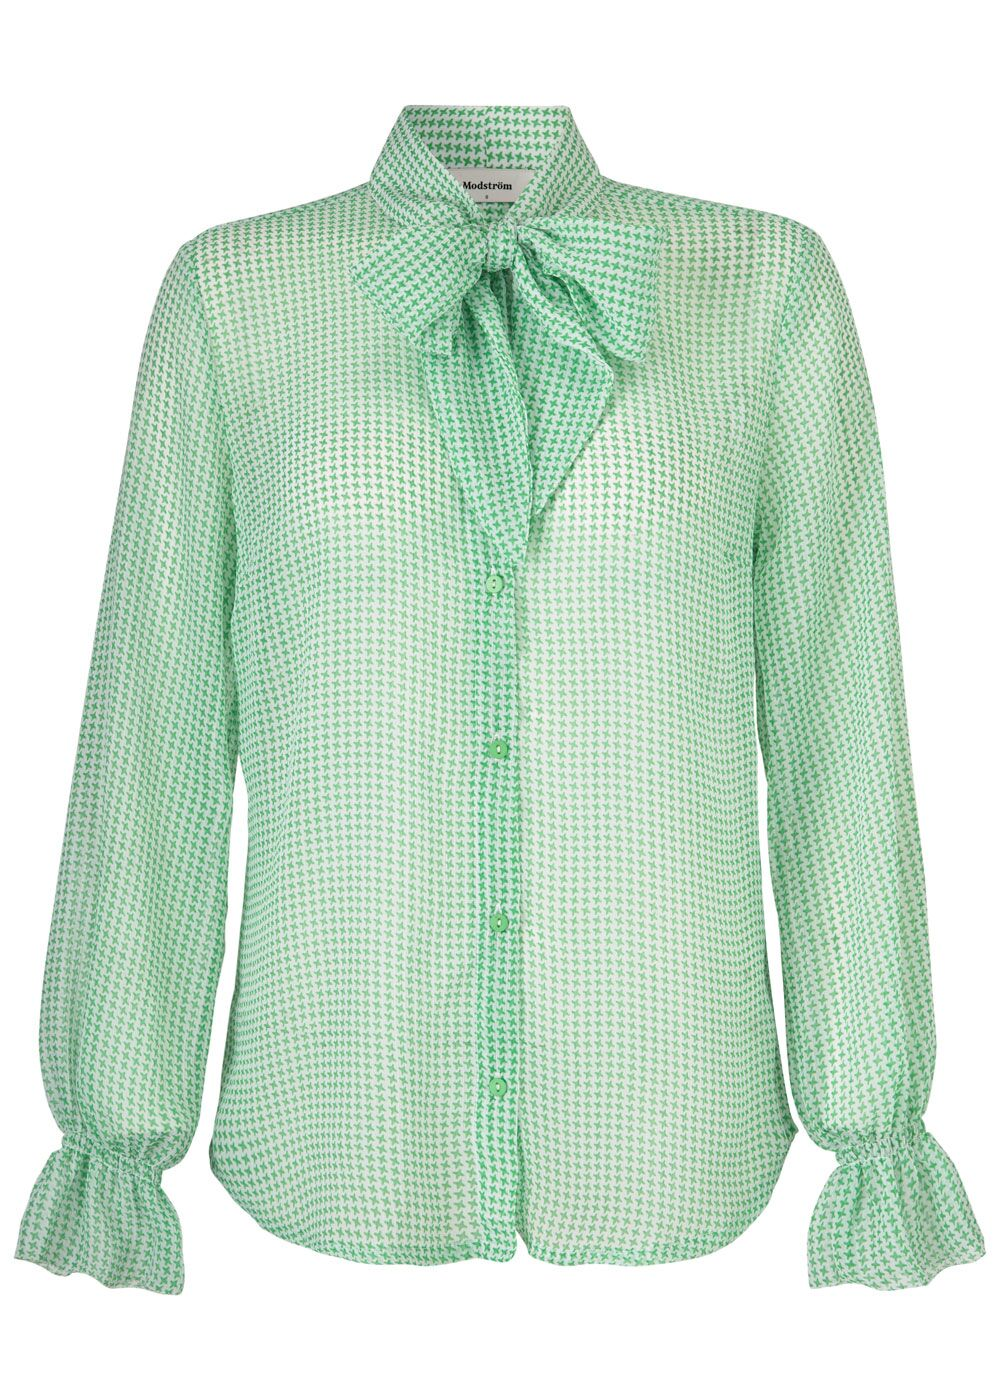 Nicola Print Shirt - Graphic Star Green